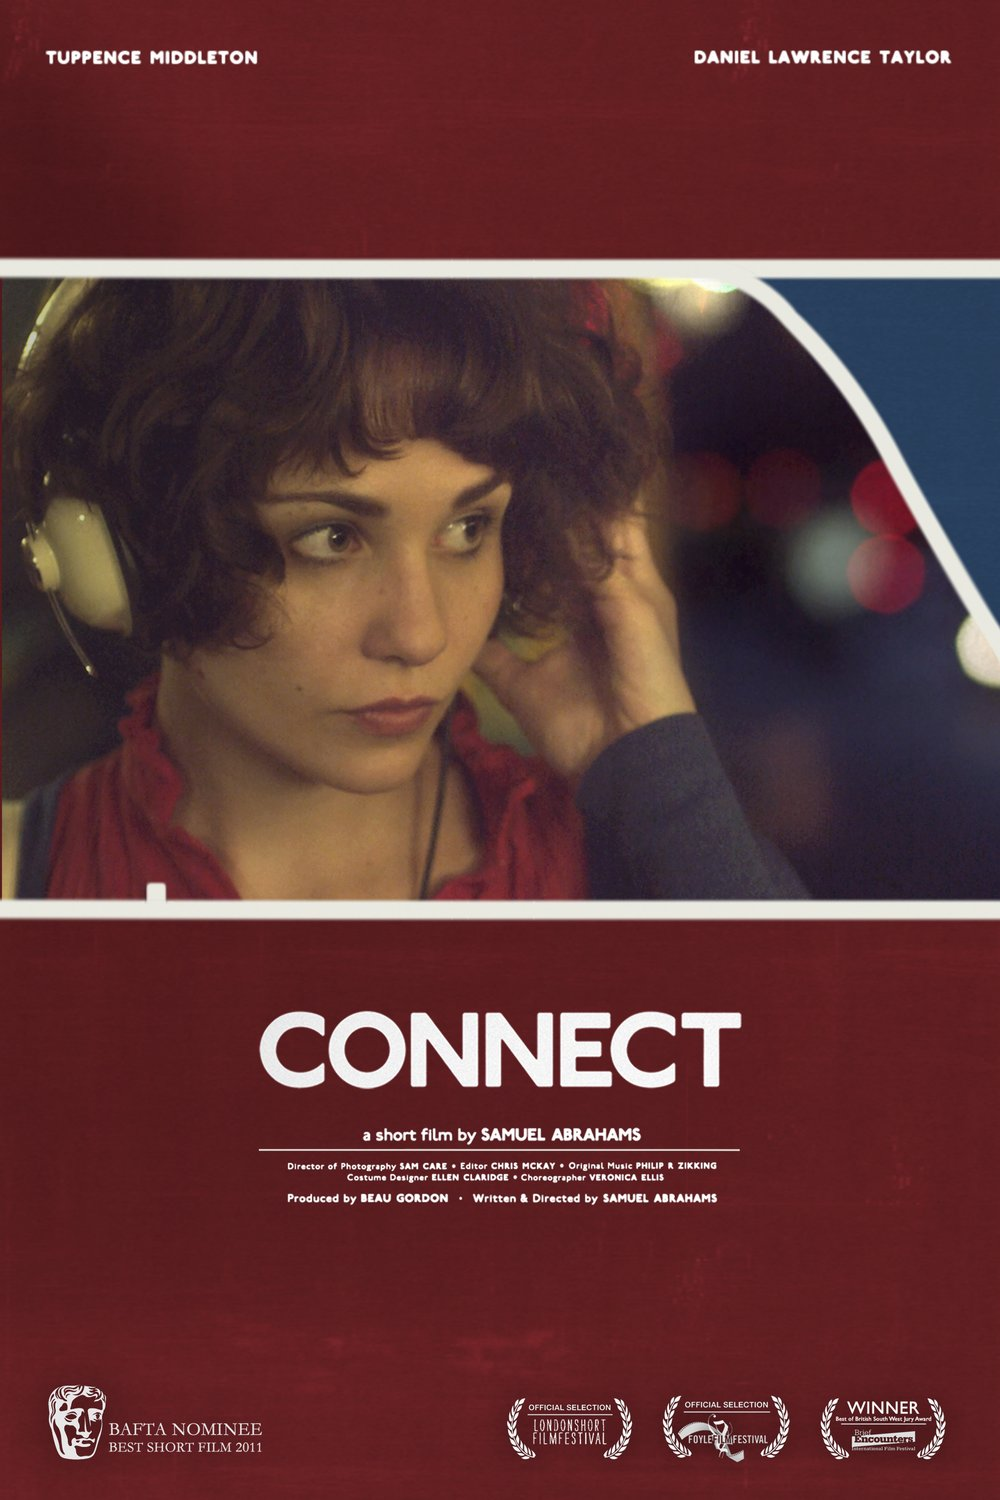 Buy 'CONNECT' on iTunes  - Samuel's BAFTA nominated short film starring Tuppence Middleton & Daniel Lawrence Taylor.